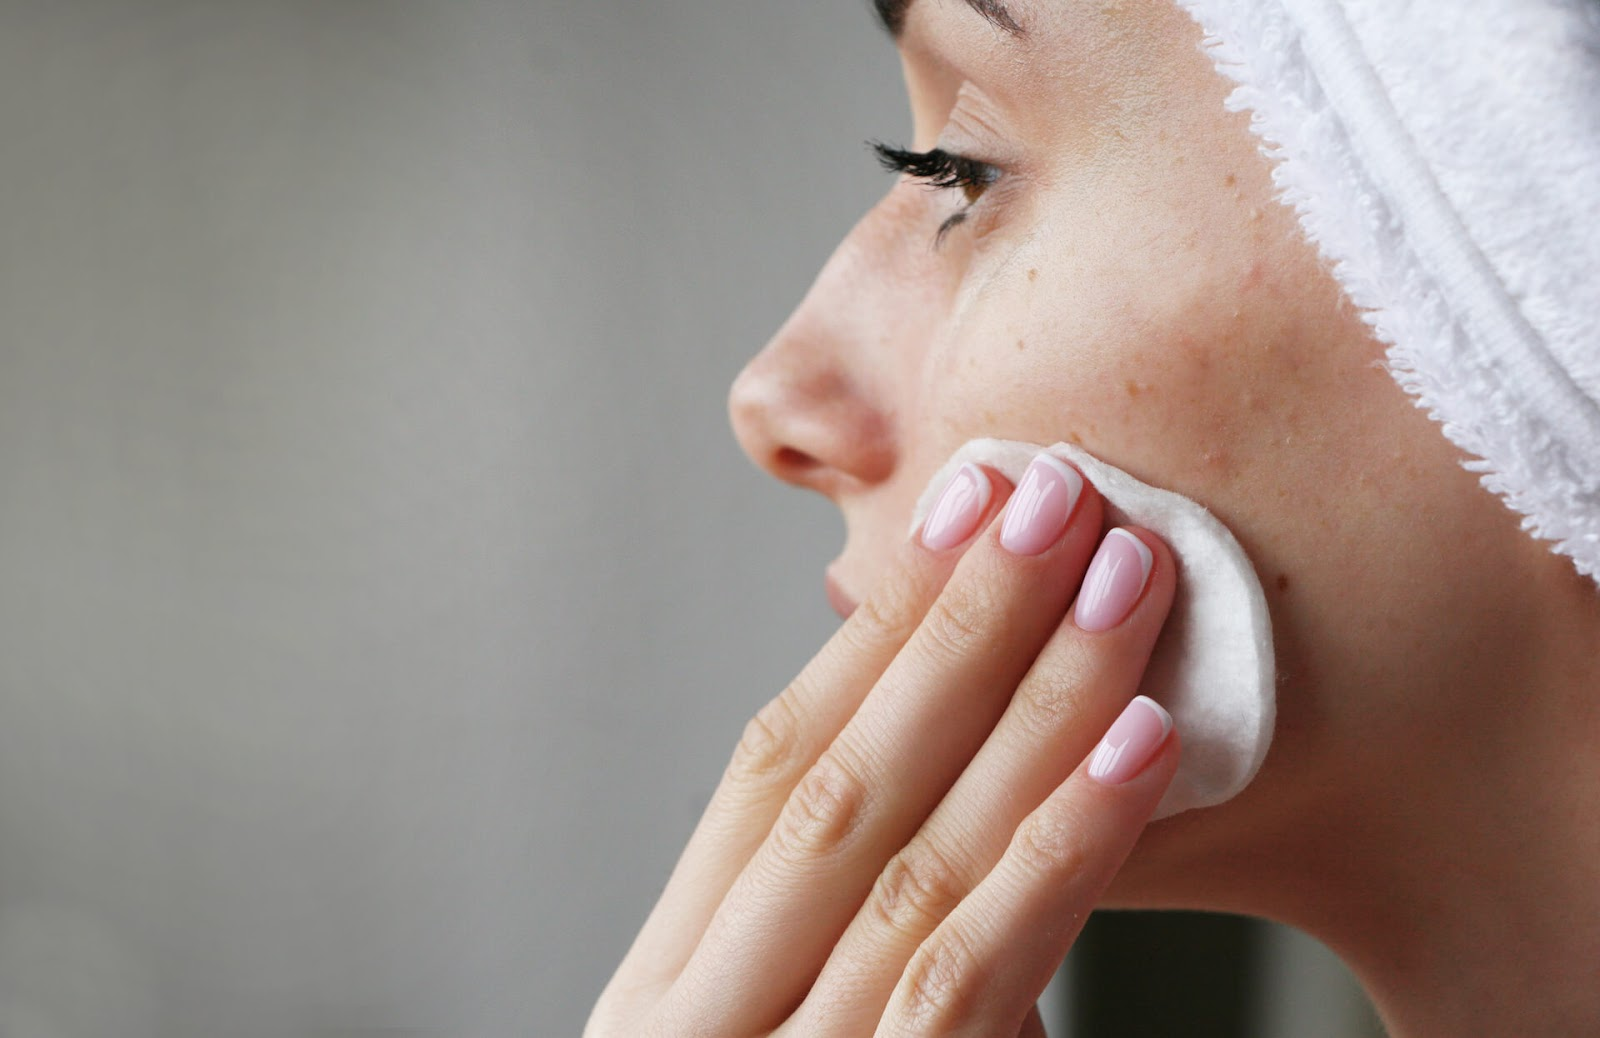 Woman rubbing her face with a cotton pad after a shower